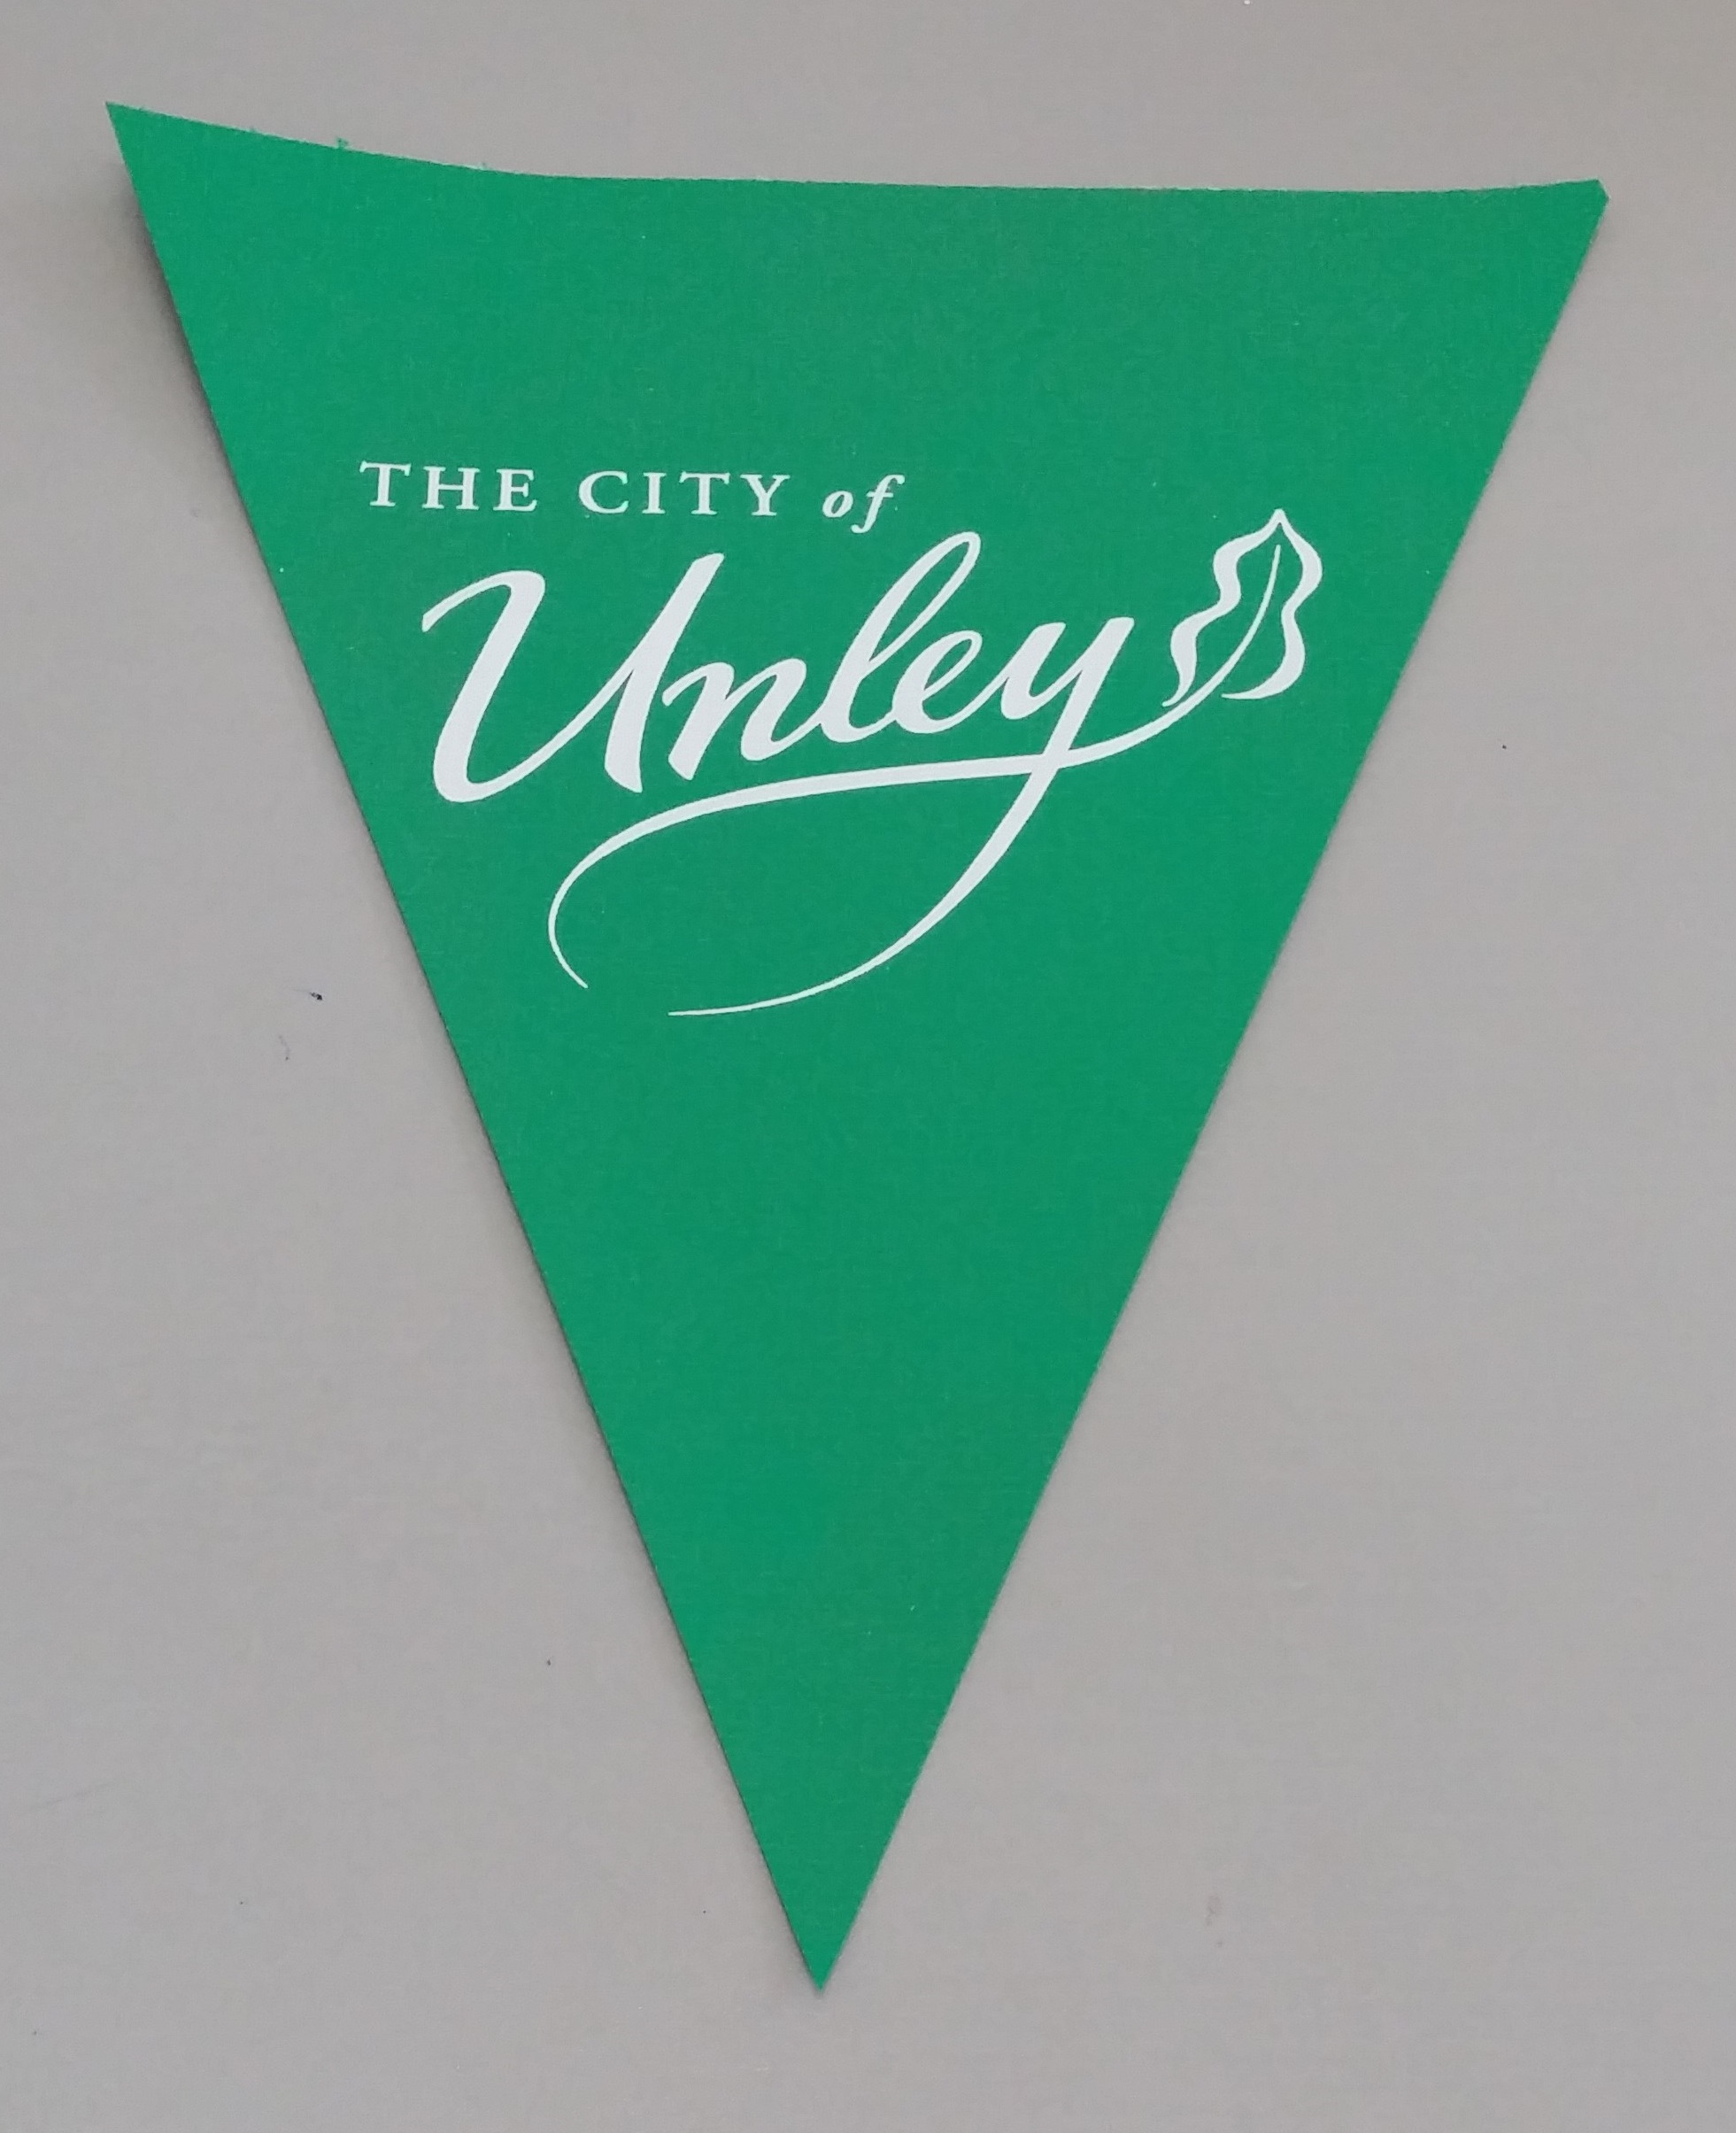 City of Unley (green)